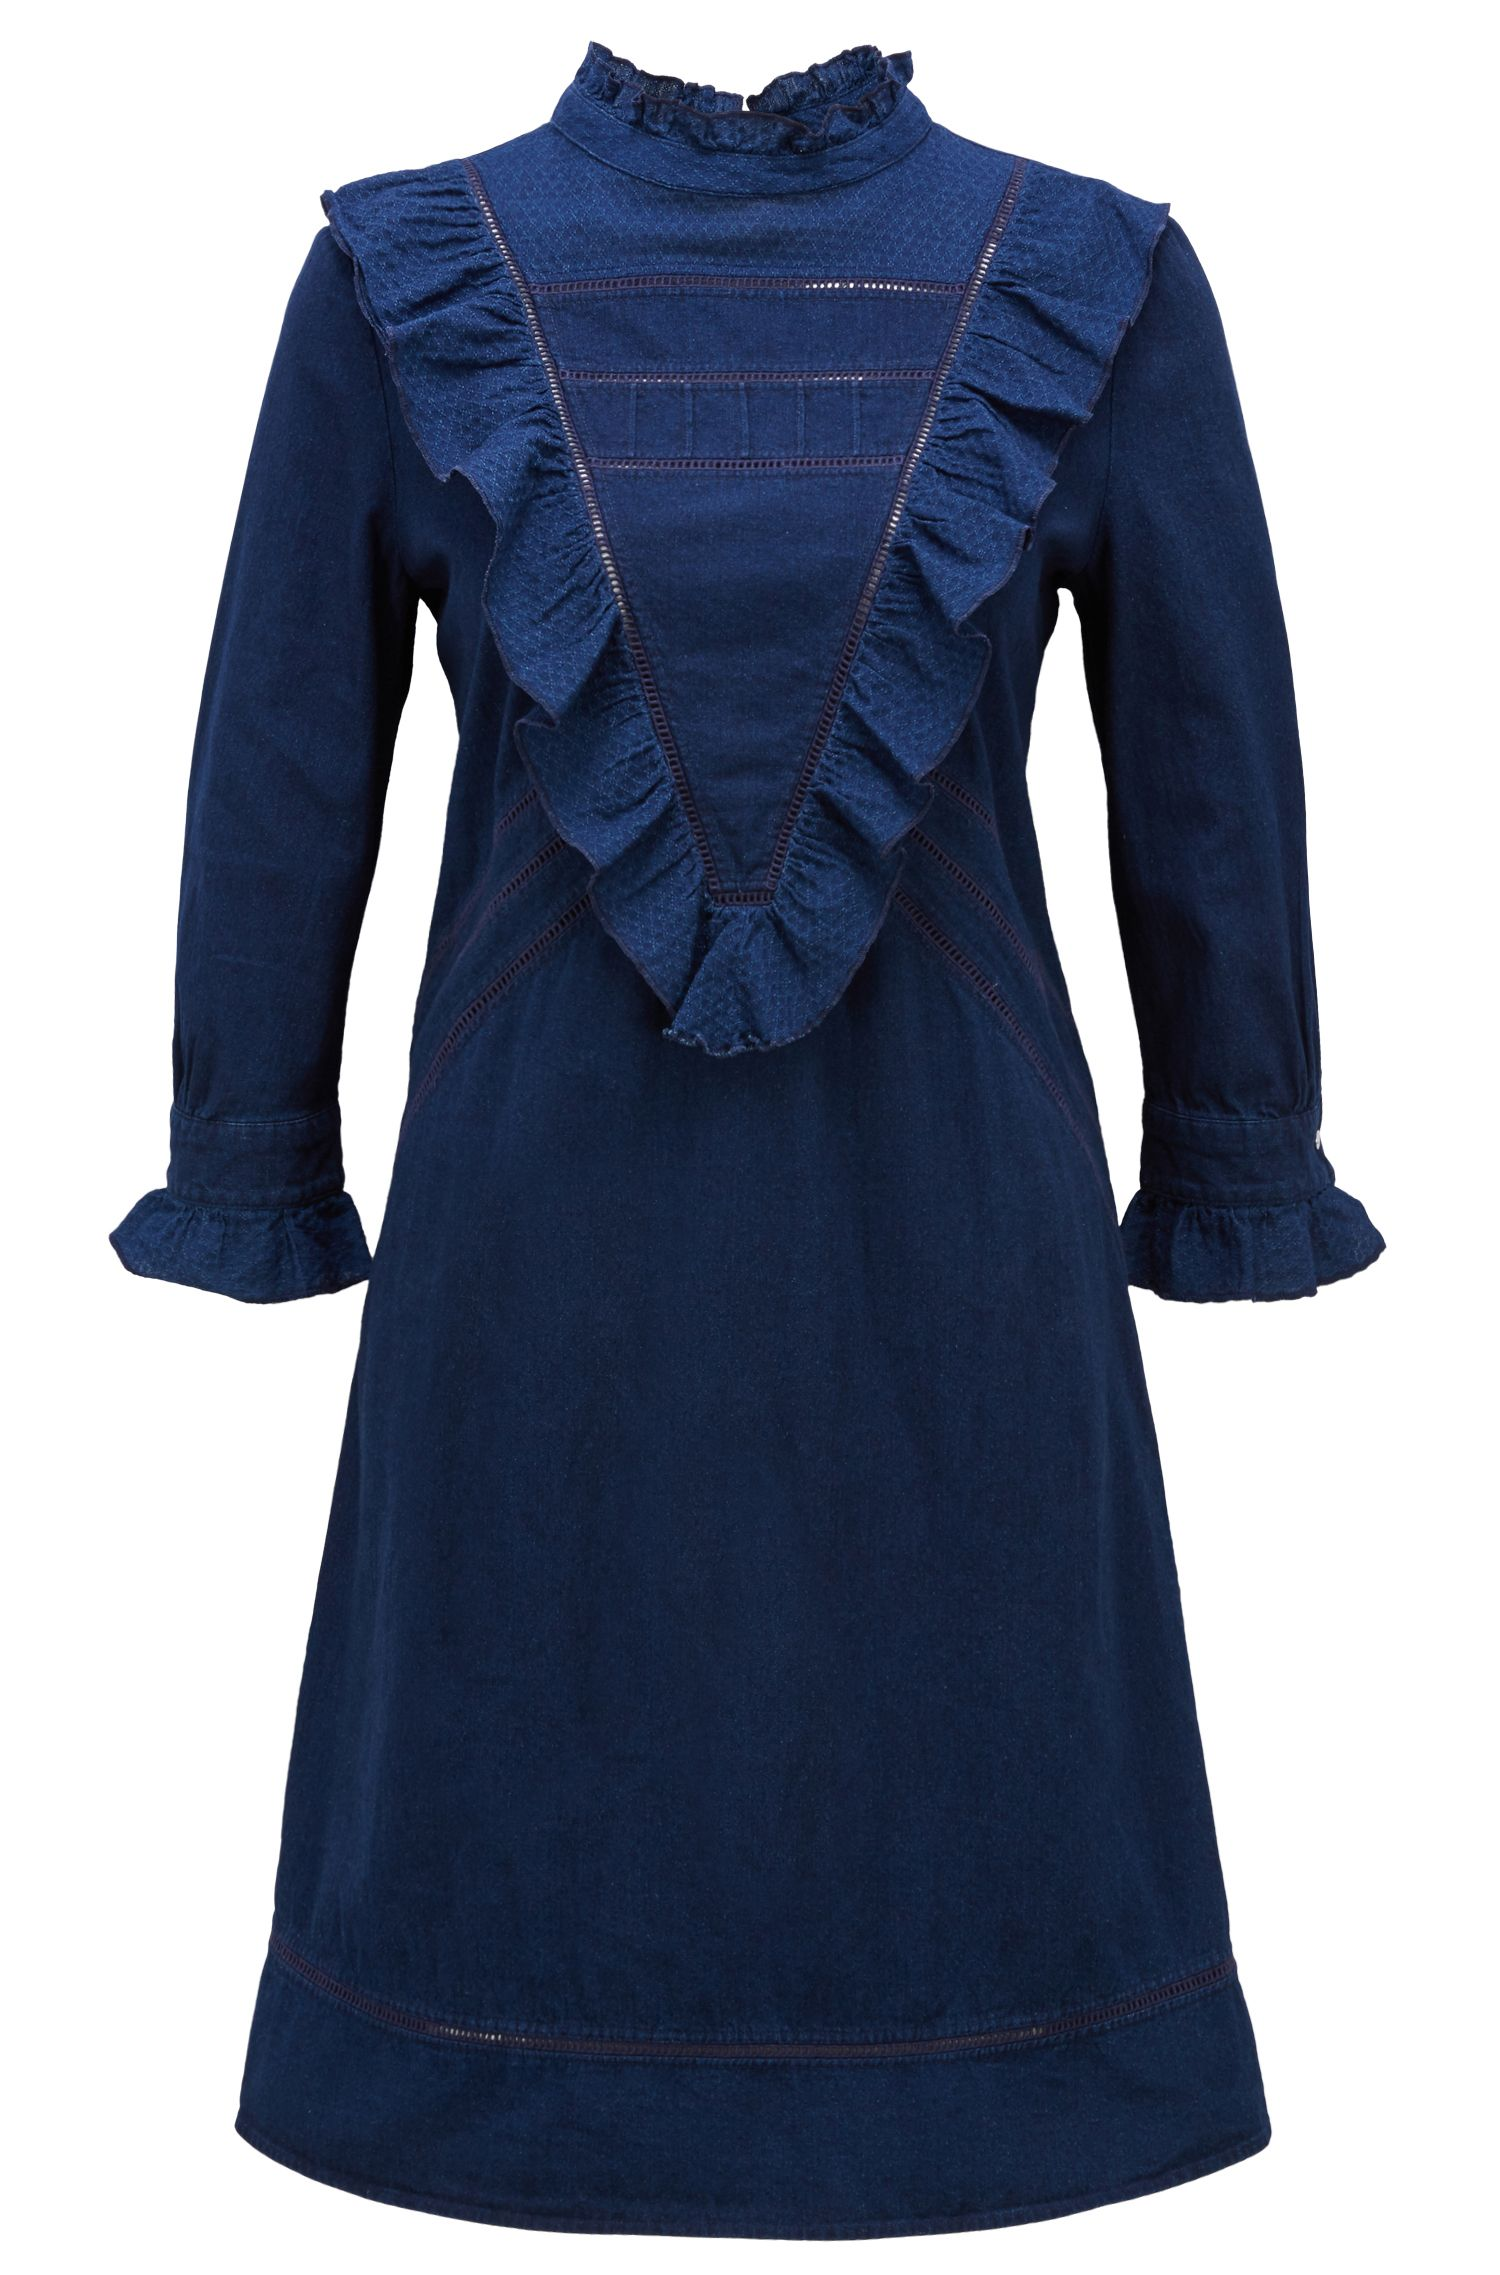 Long-sleeved dress in indigo denim with V-shaped plastron